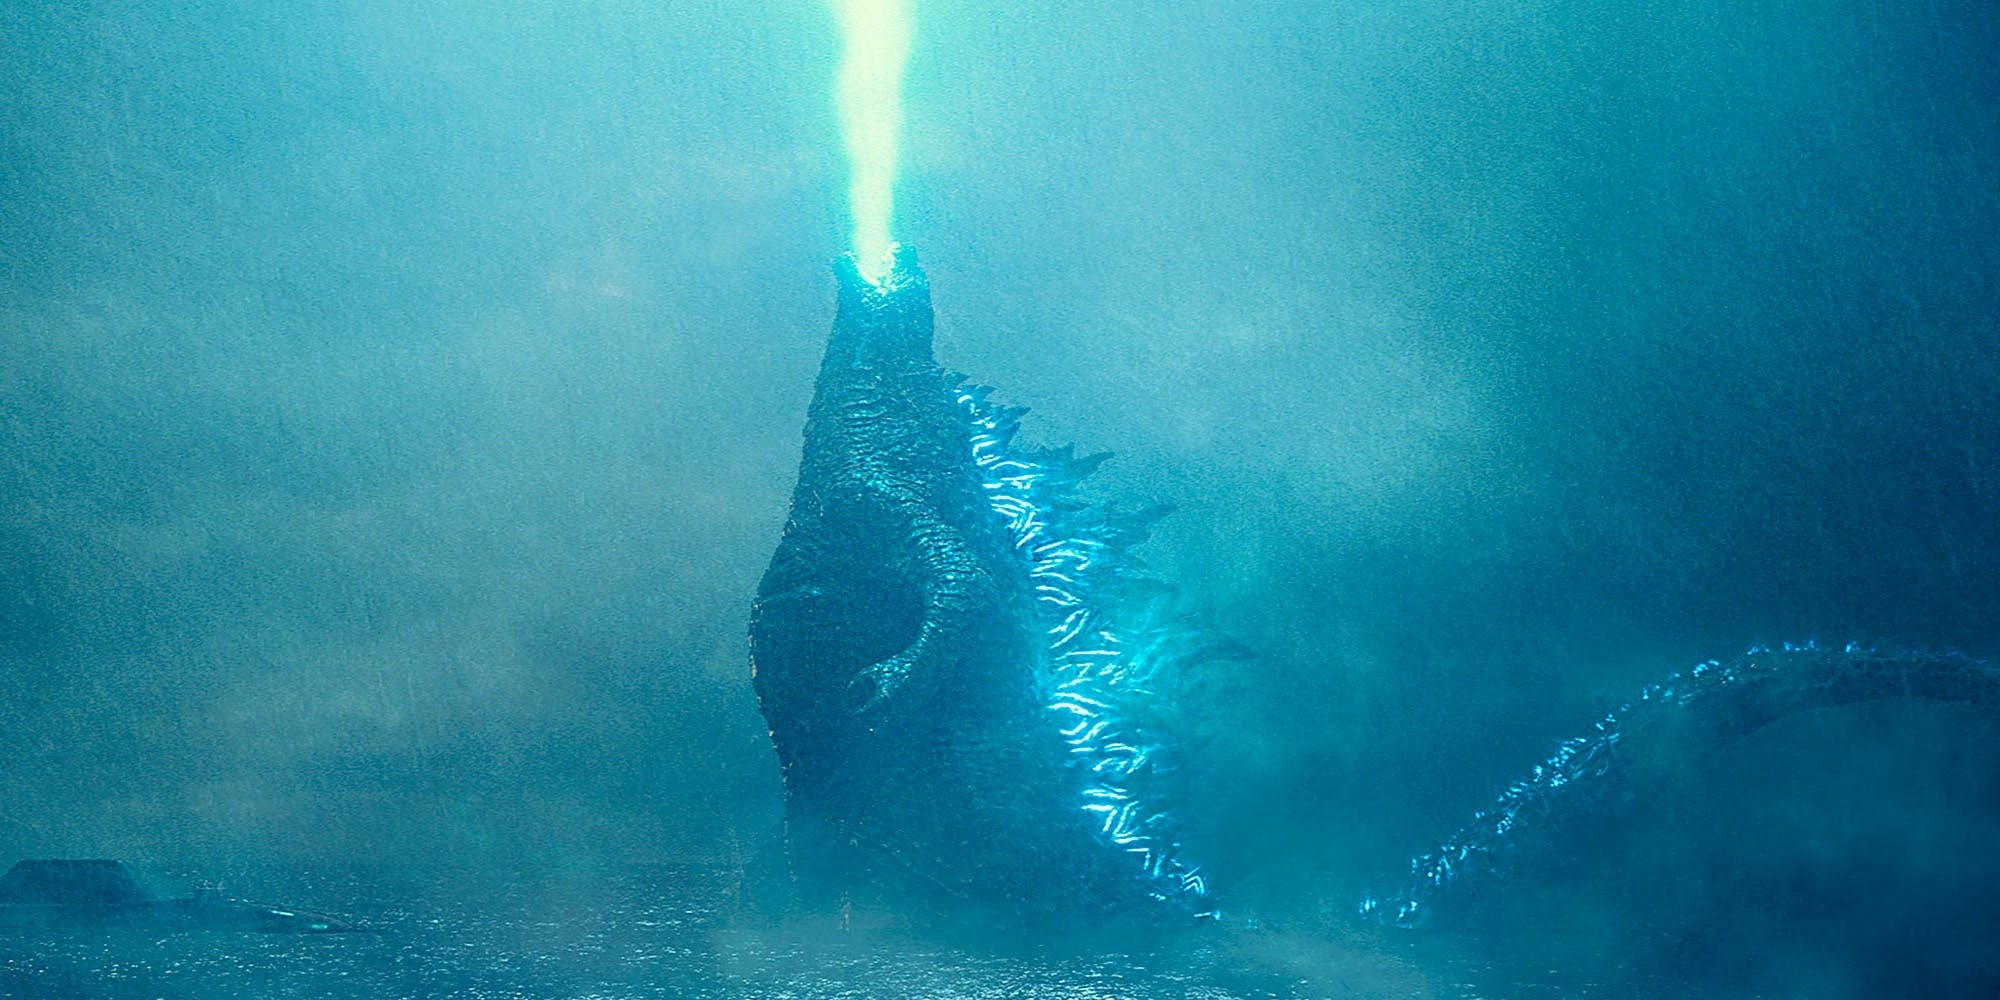 Godzilla II – King of the Monsters, all hail the King!